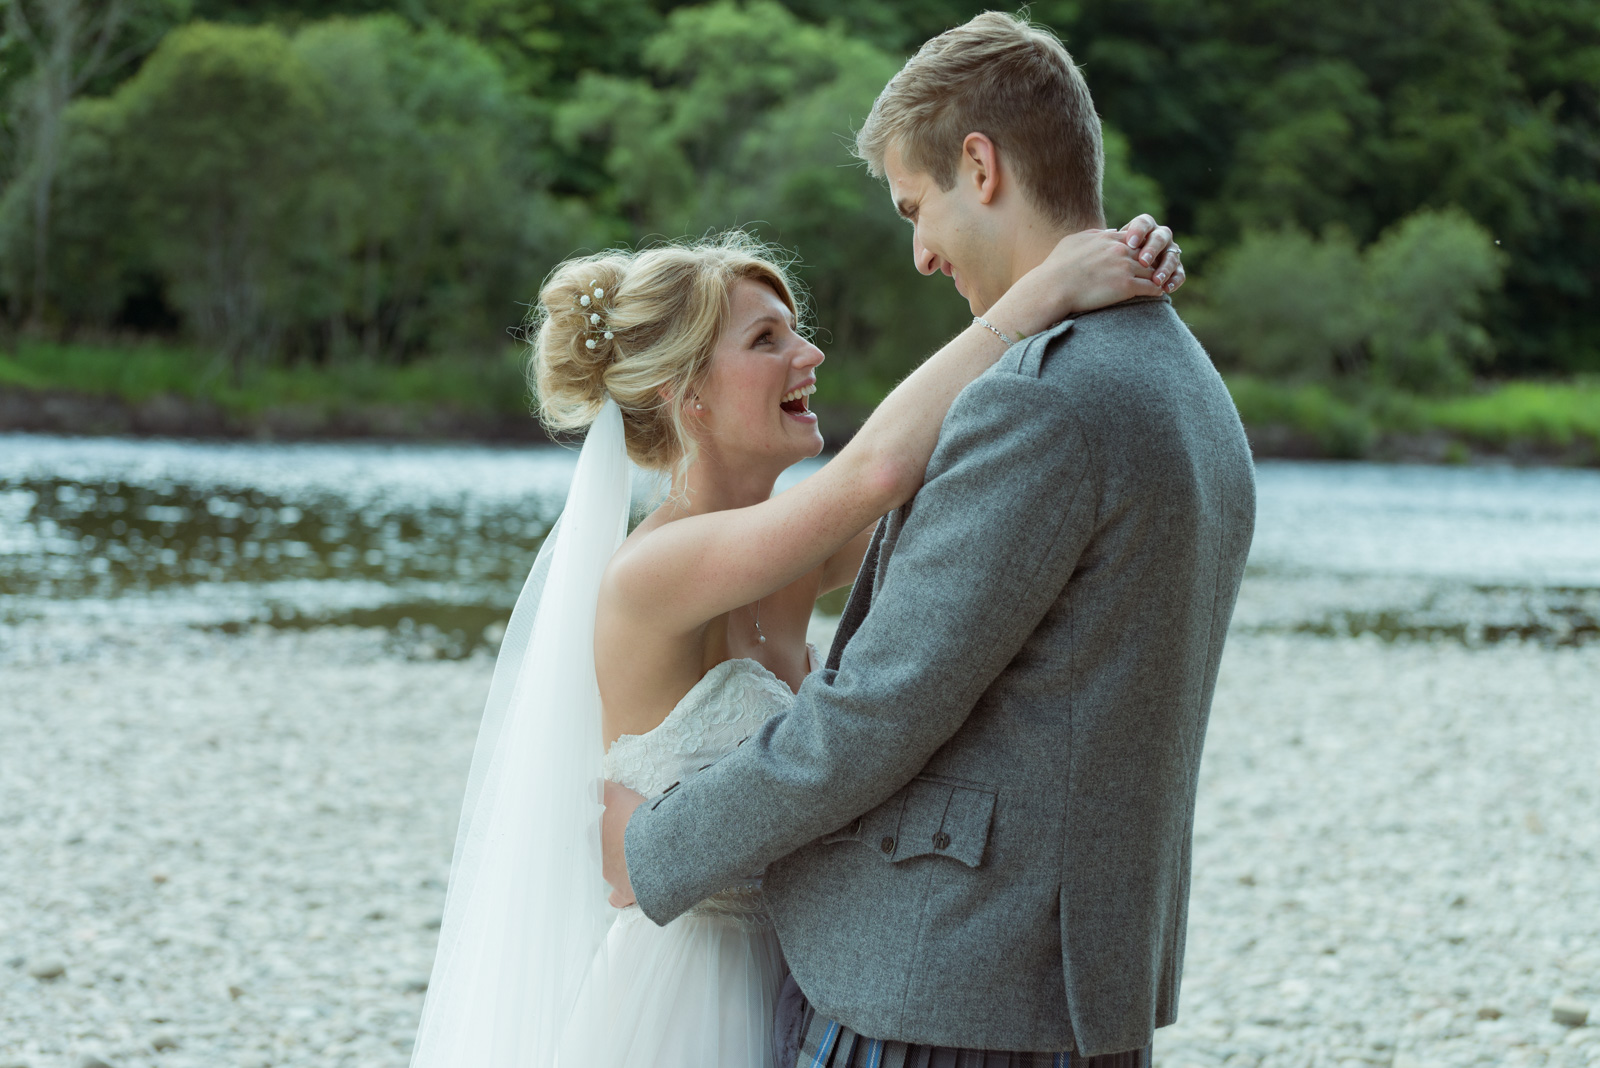 Bride and groom - romantic by the river Tay at Dunkeld House Hotel 1